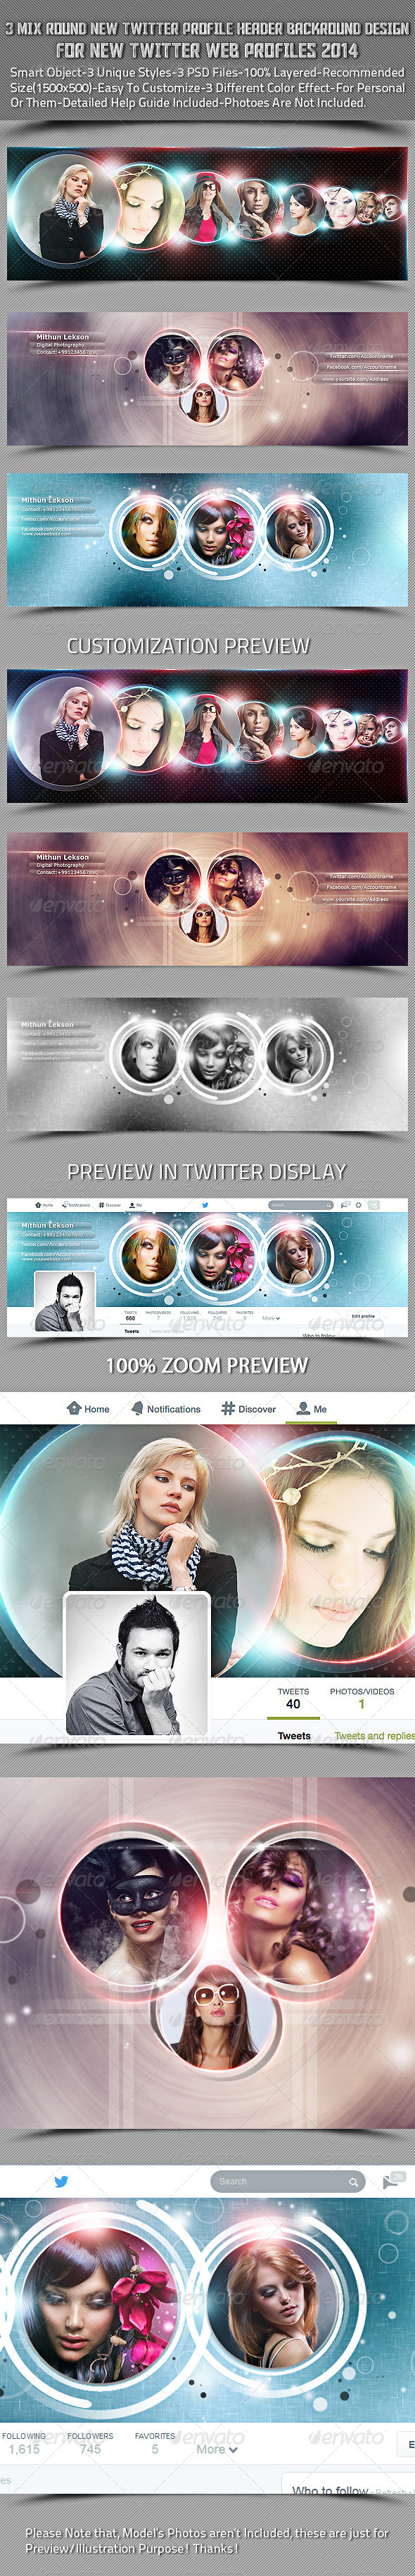 GraphicRiver 3 Mix Round New Twitter Header Profile Background 7814192